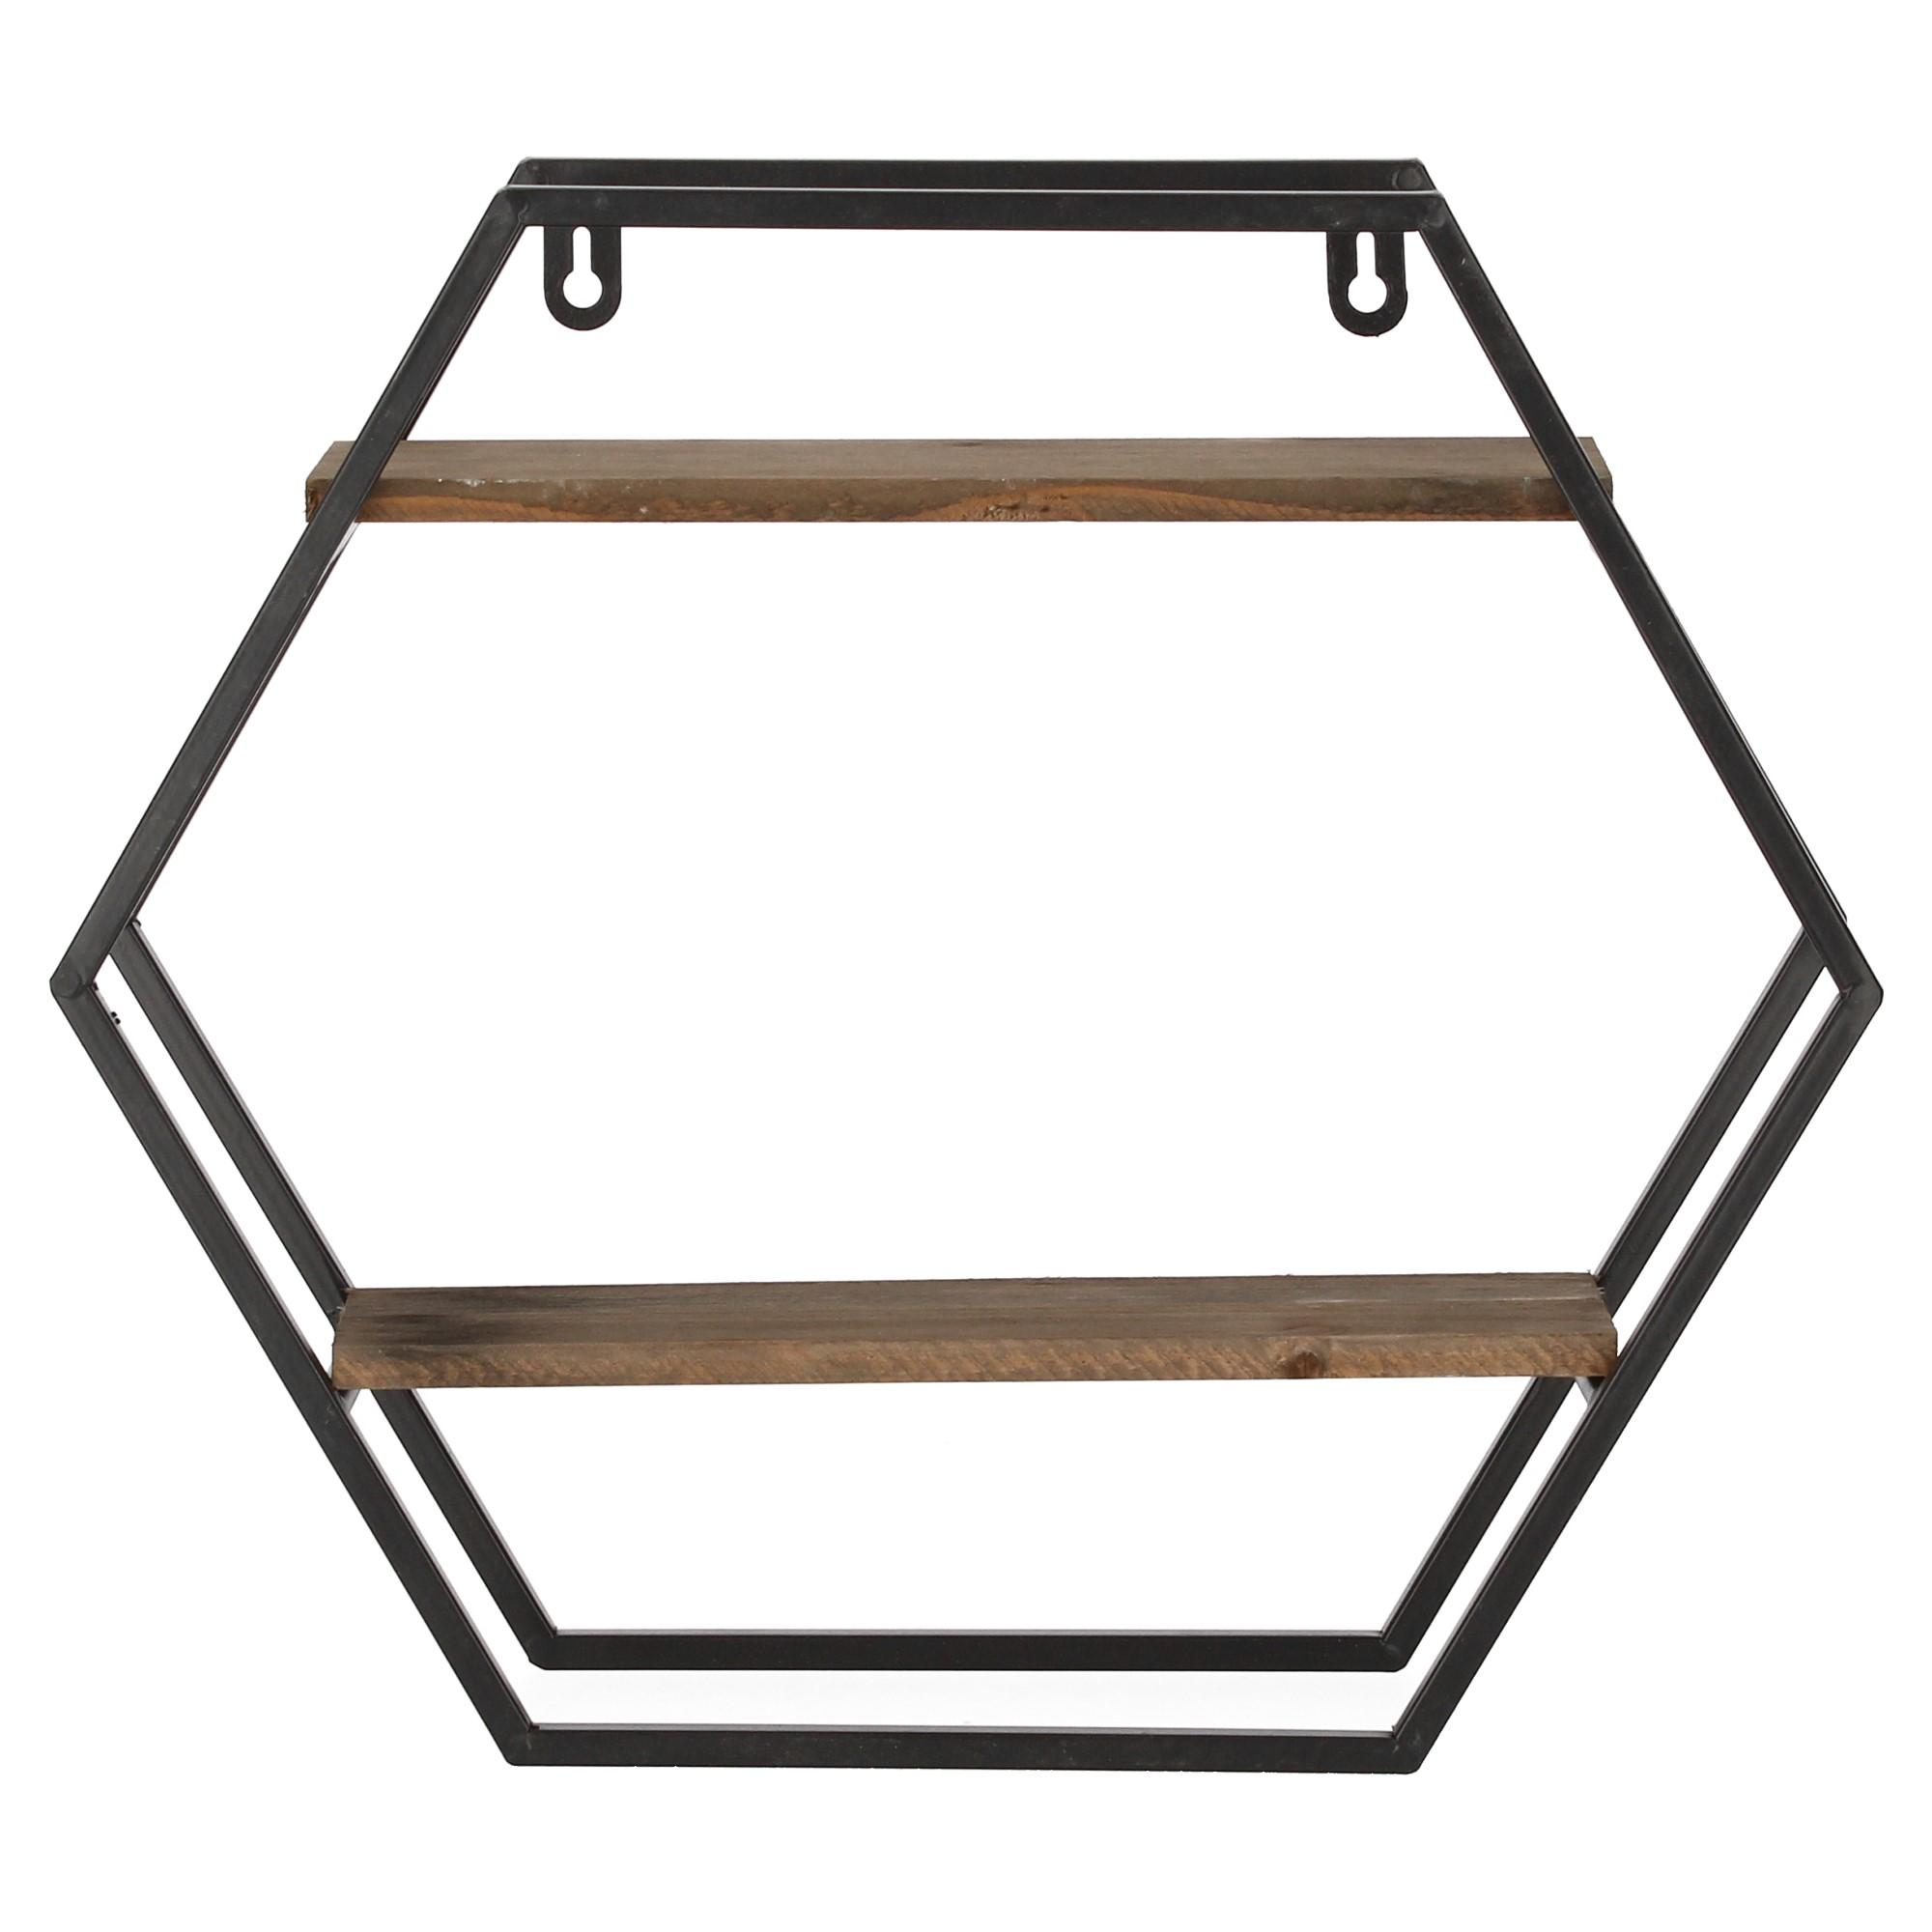 Wandregal Amazon Dijk Natural Collection Wandregal Metall Holz Hexagon